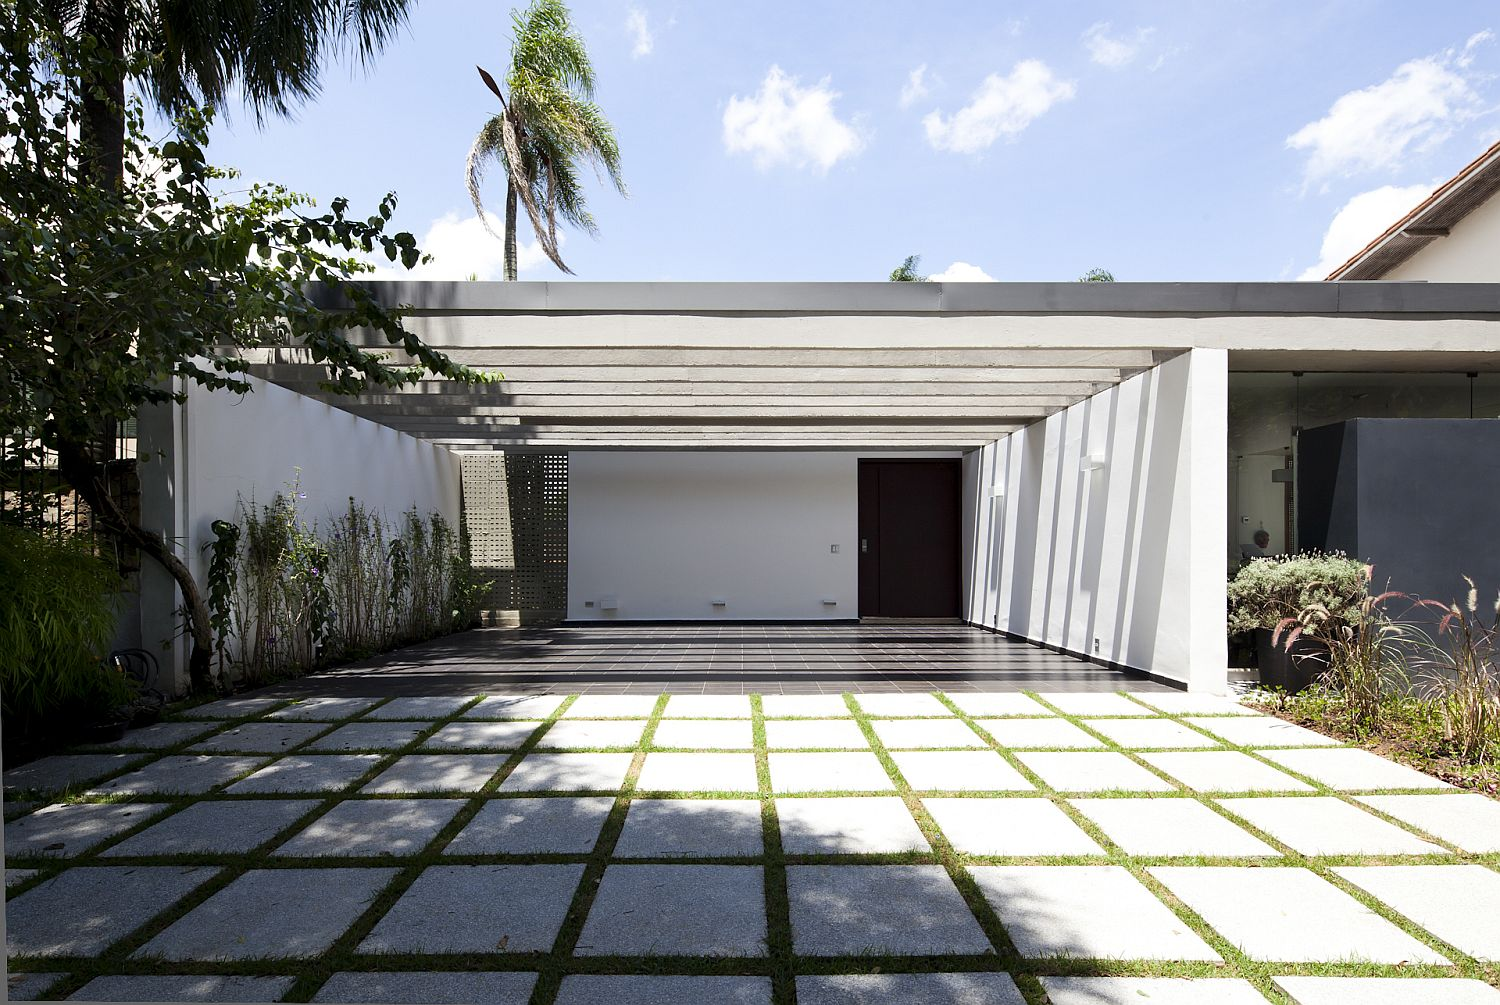 Curated modern landscape around the modern home